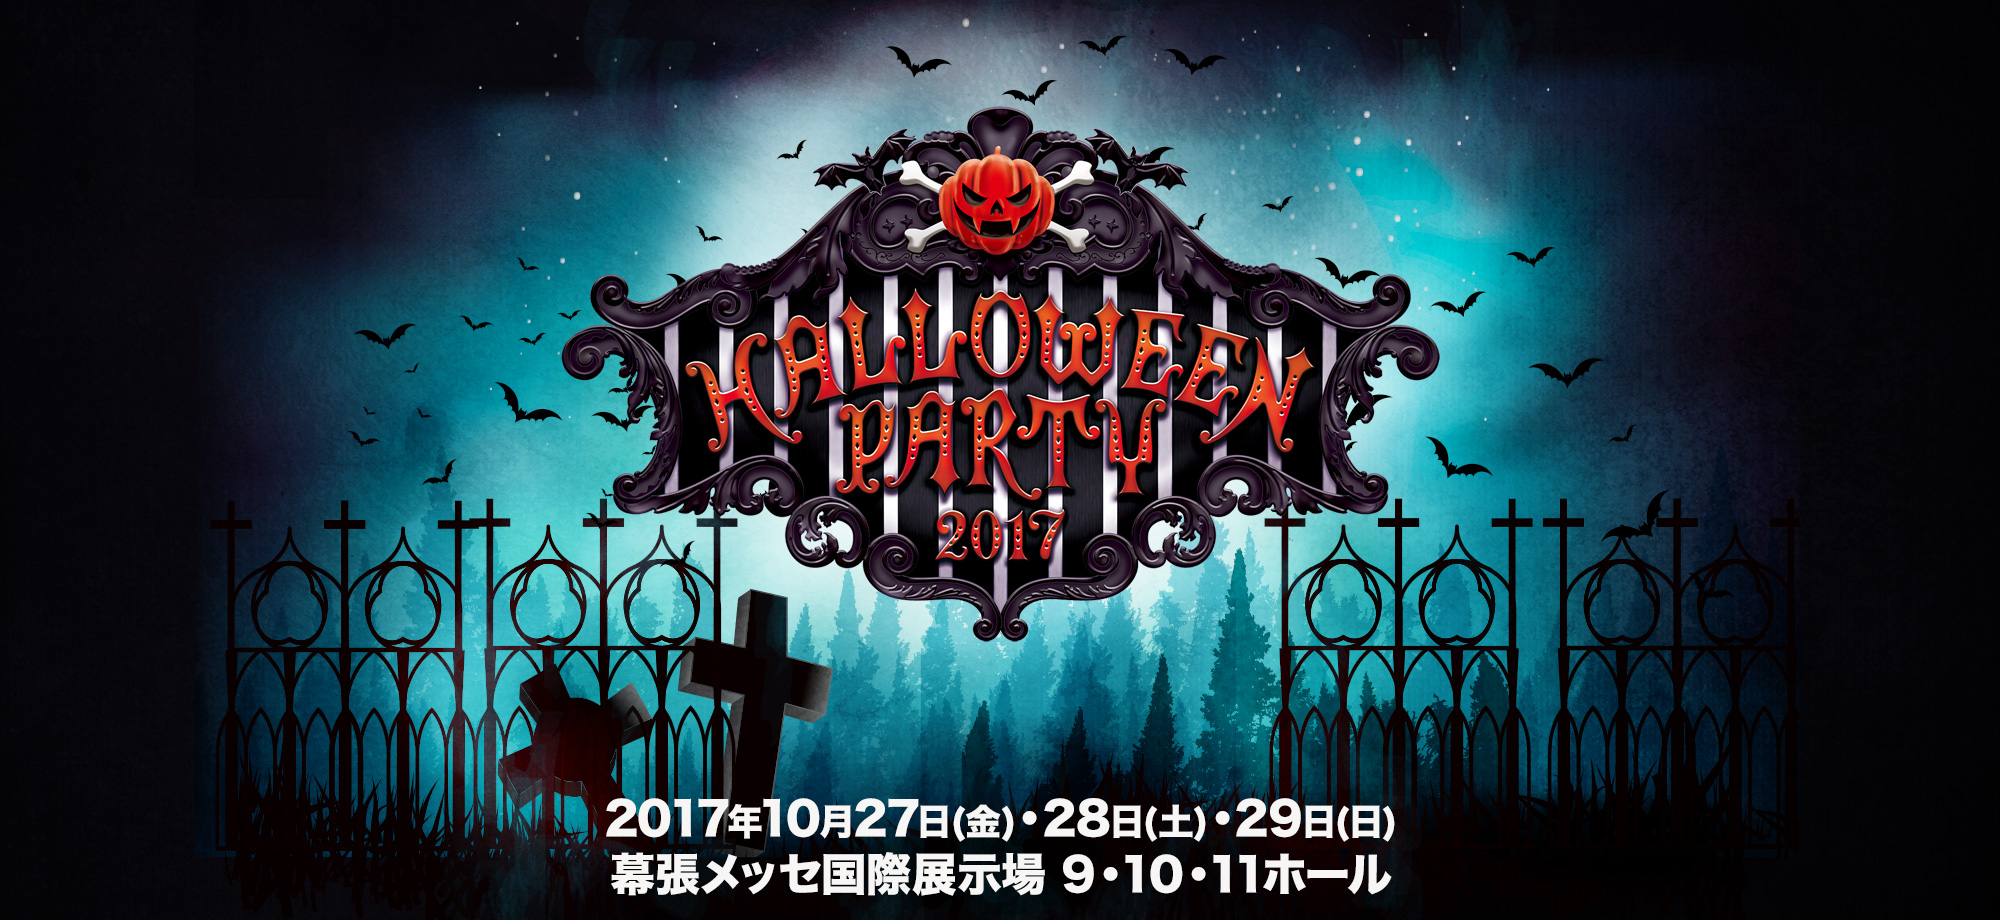 <Source:HALLOWEEN PARTY 2017 Official Website>